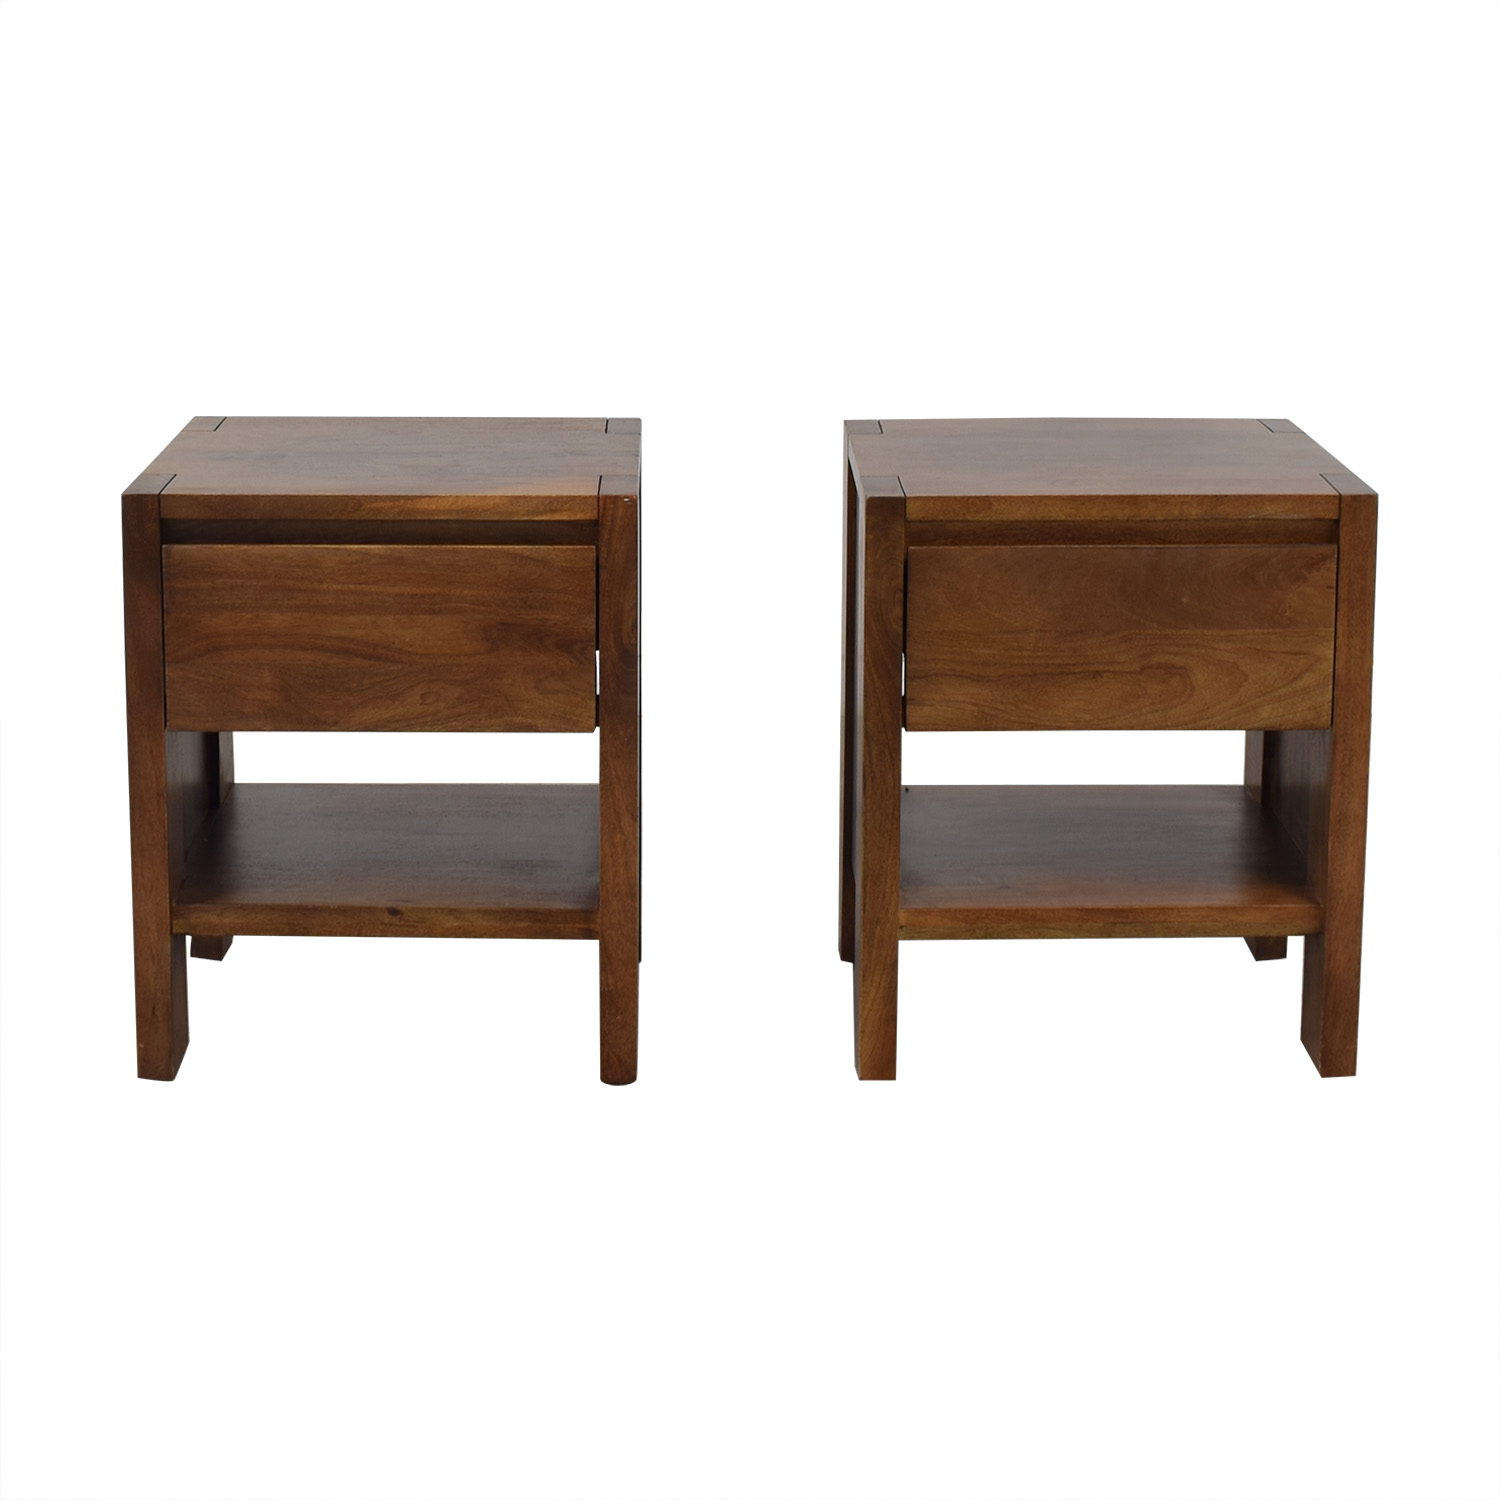 Crate & Barrel Nightstands / End Tables